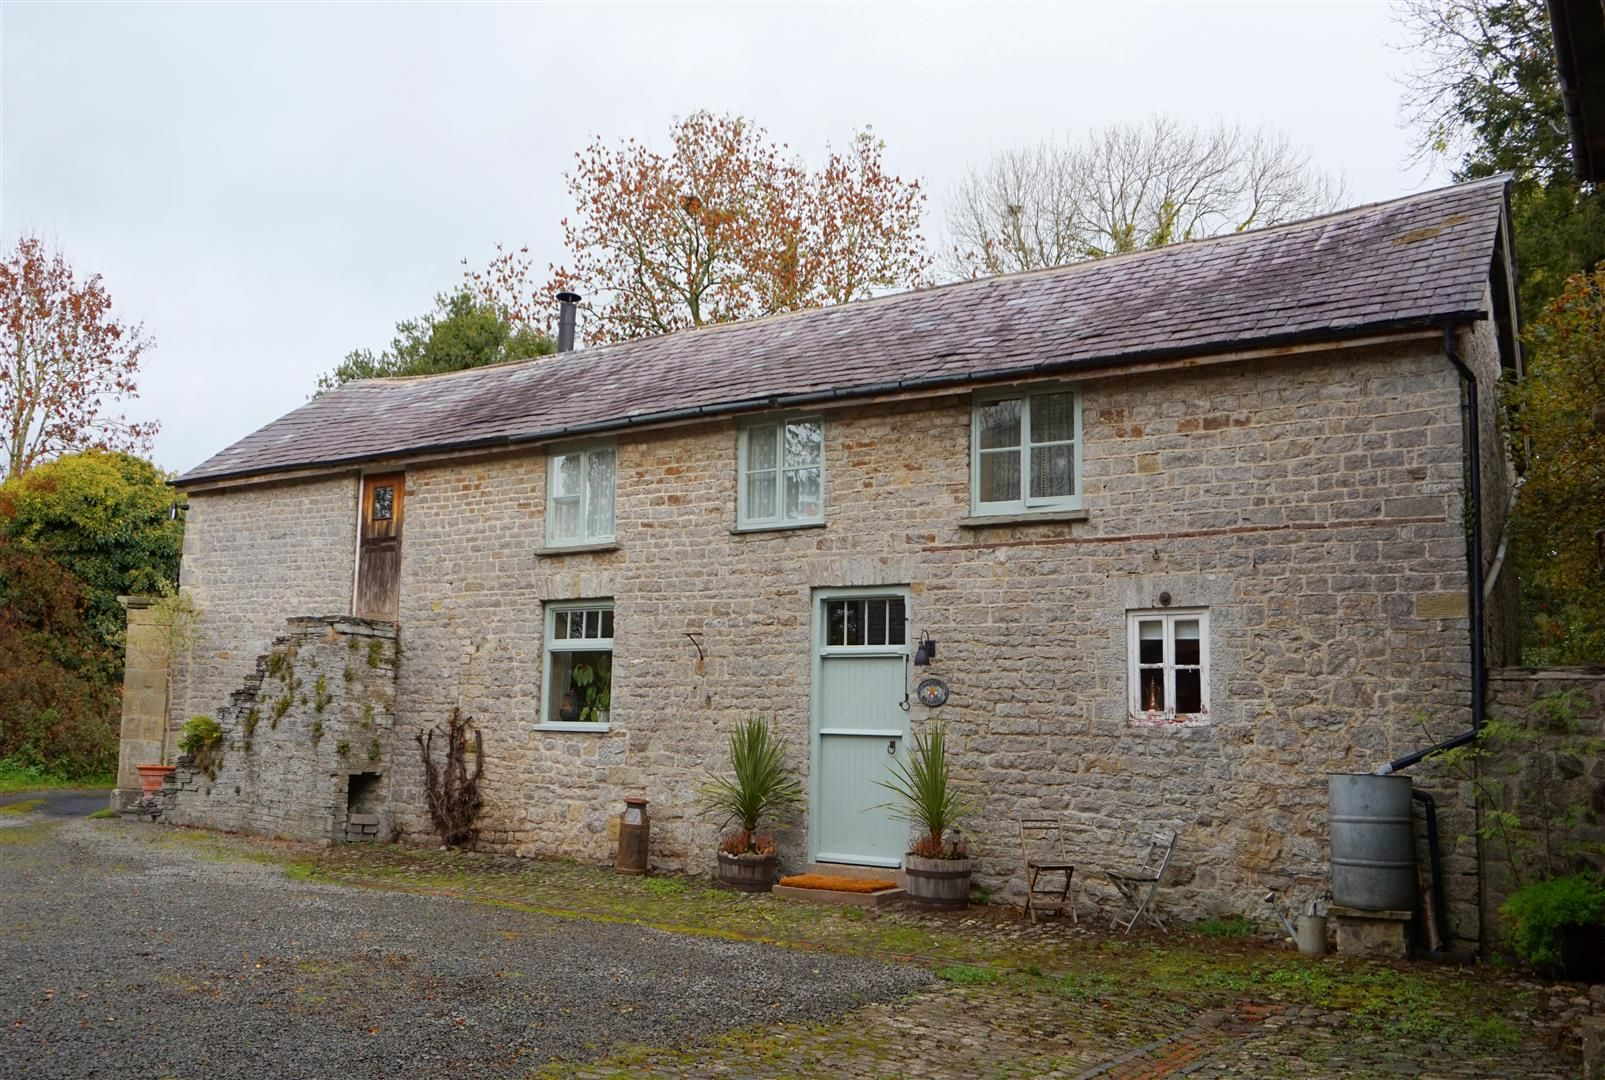 3 bed detached for sale in Presteigne  - Property Image 1